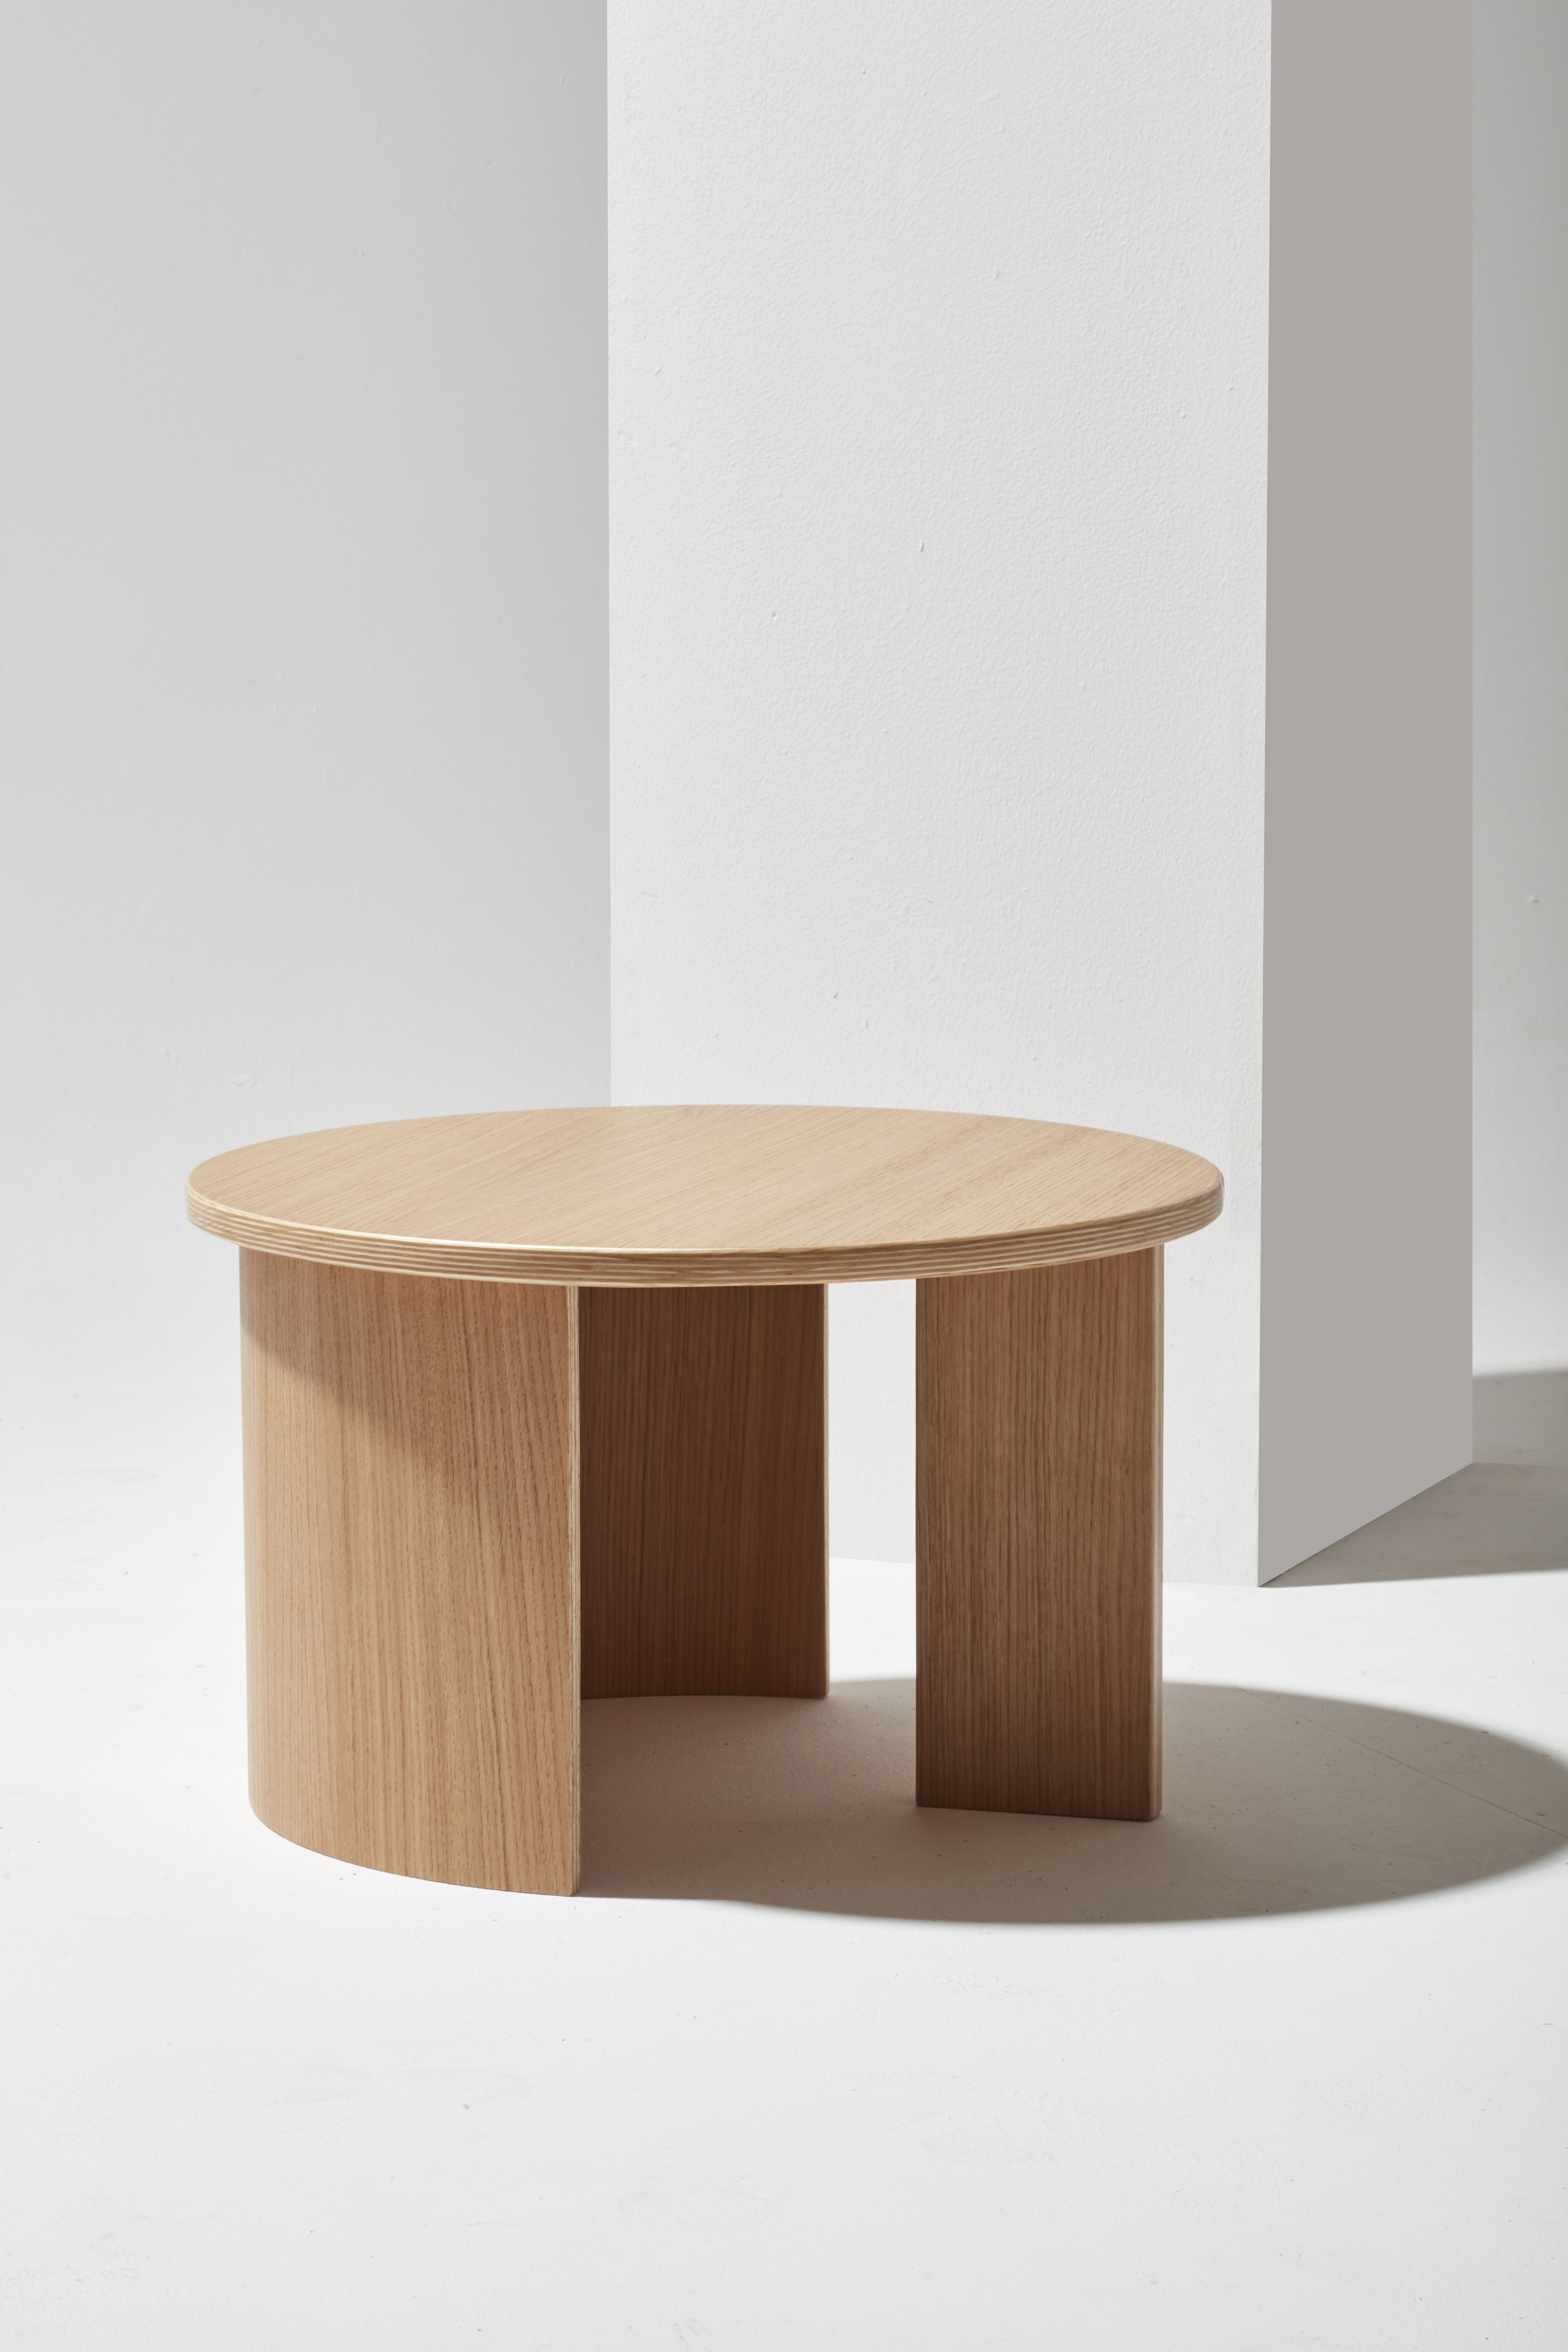 Giro Small Round Coffee Table In Oak Side Table Wood Coffee Table Table [ 6480 x 4320 Pixel ]